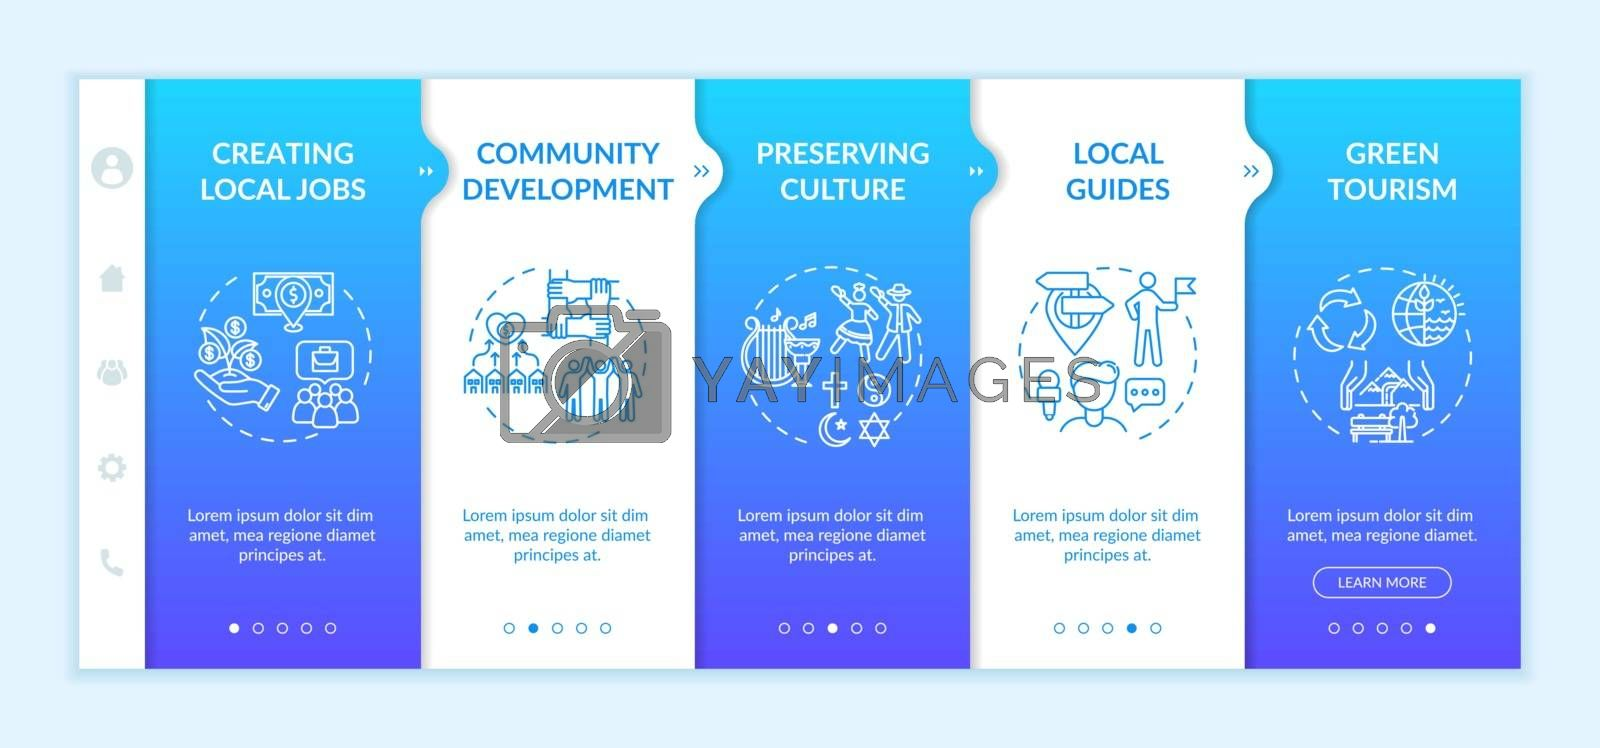 Local tourism benefits onboarding vector template. Community development. Green tourism promotion. Responsive mobile website with icons. Webpage walkthrough step screens. RGB color concept